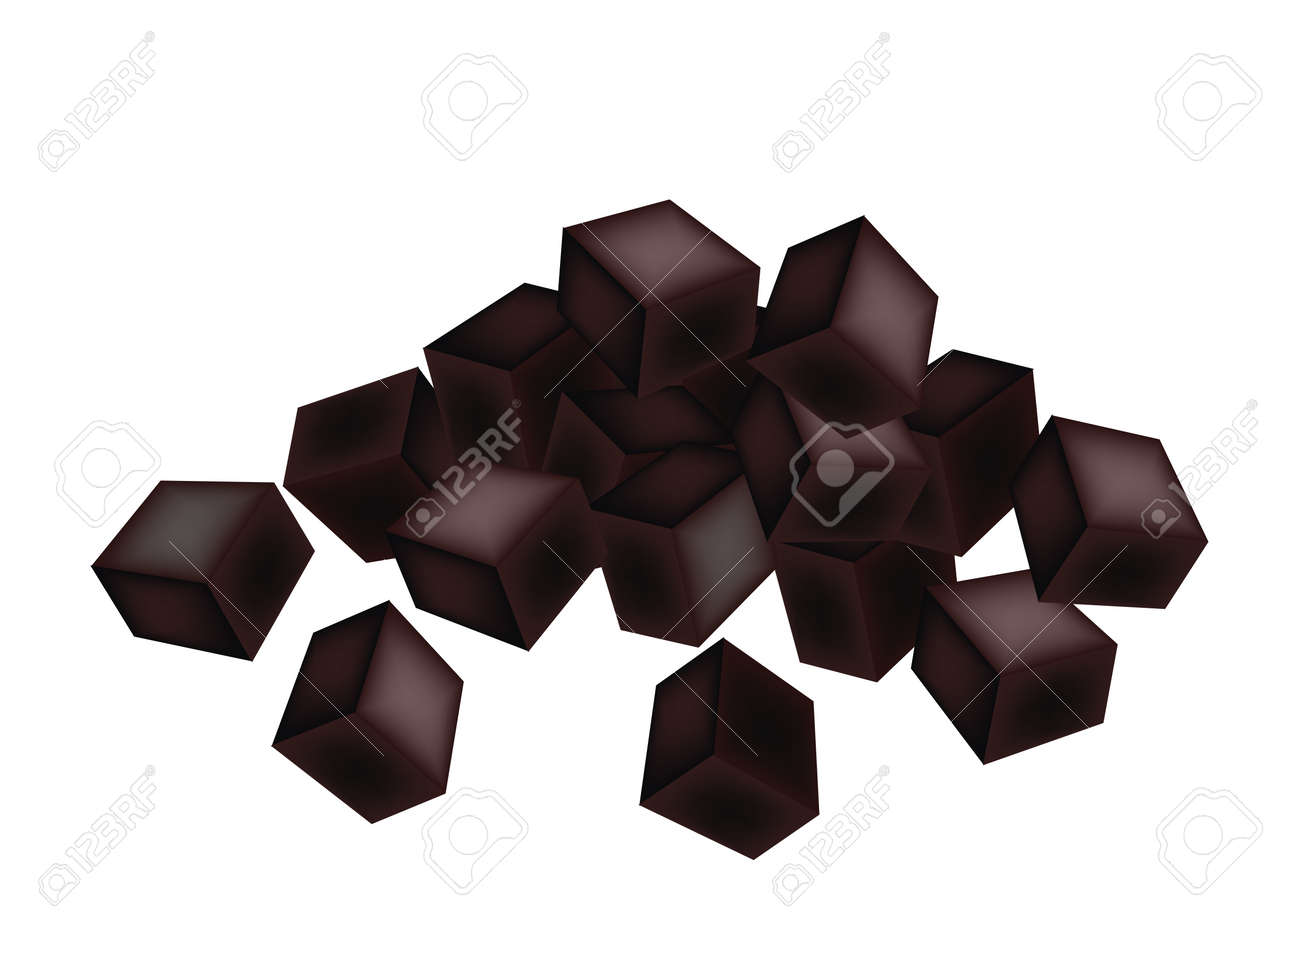 Sweet Food and Dessert, An Illustration of Grass jelly or Chinese Black Jelly Isolated on White Background. - 29447228